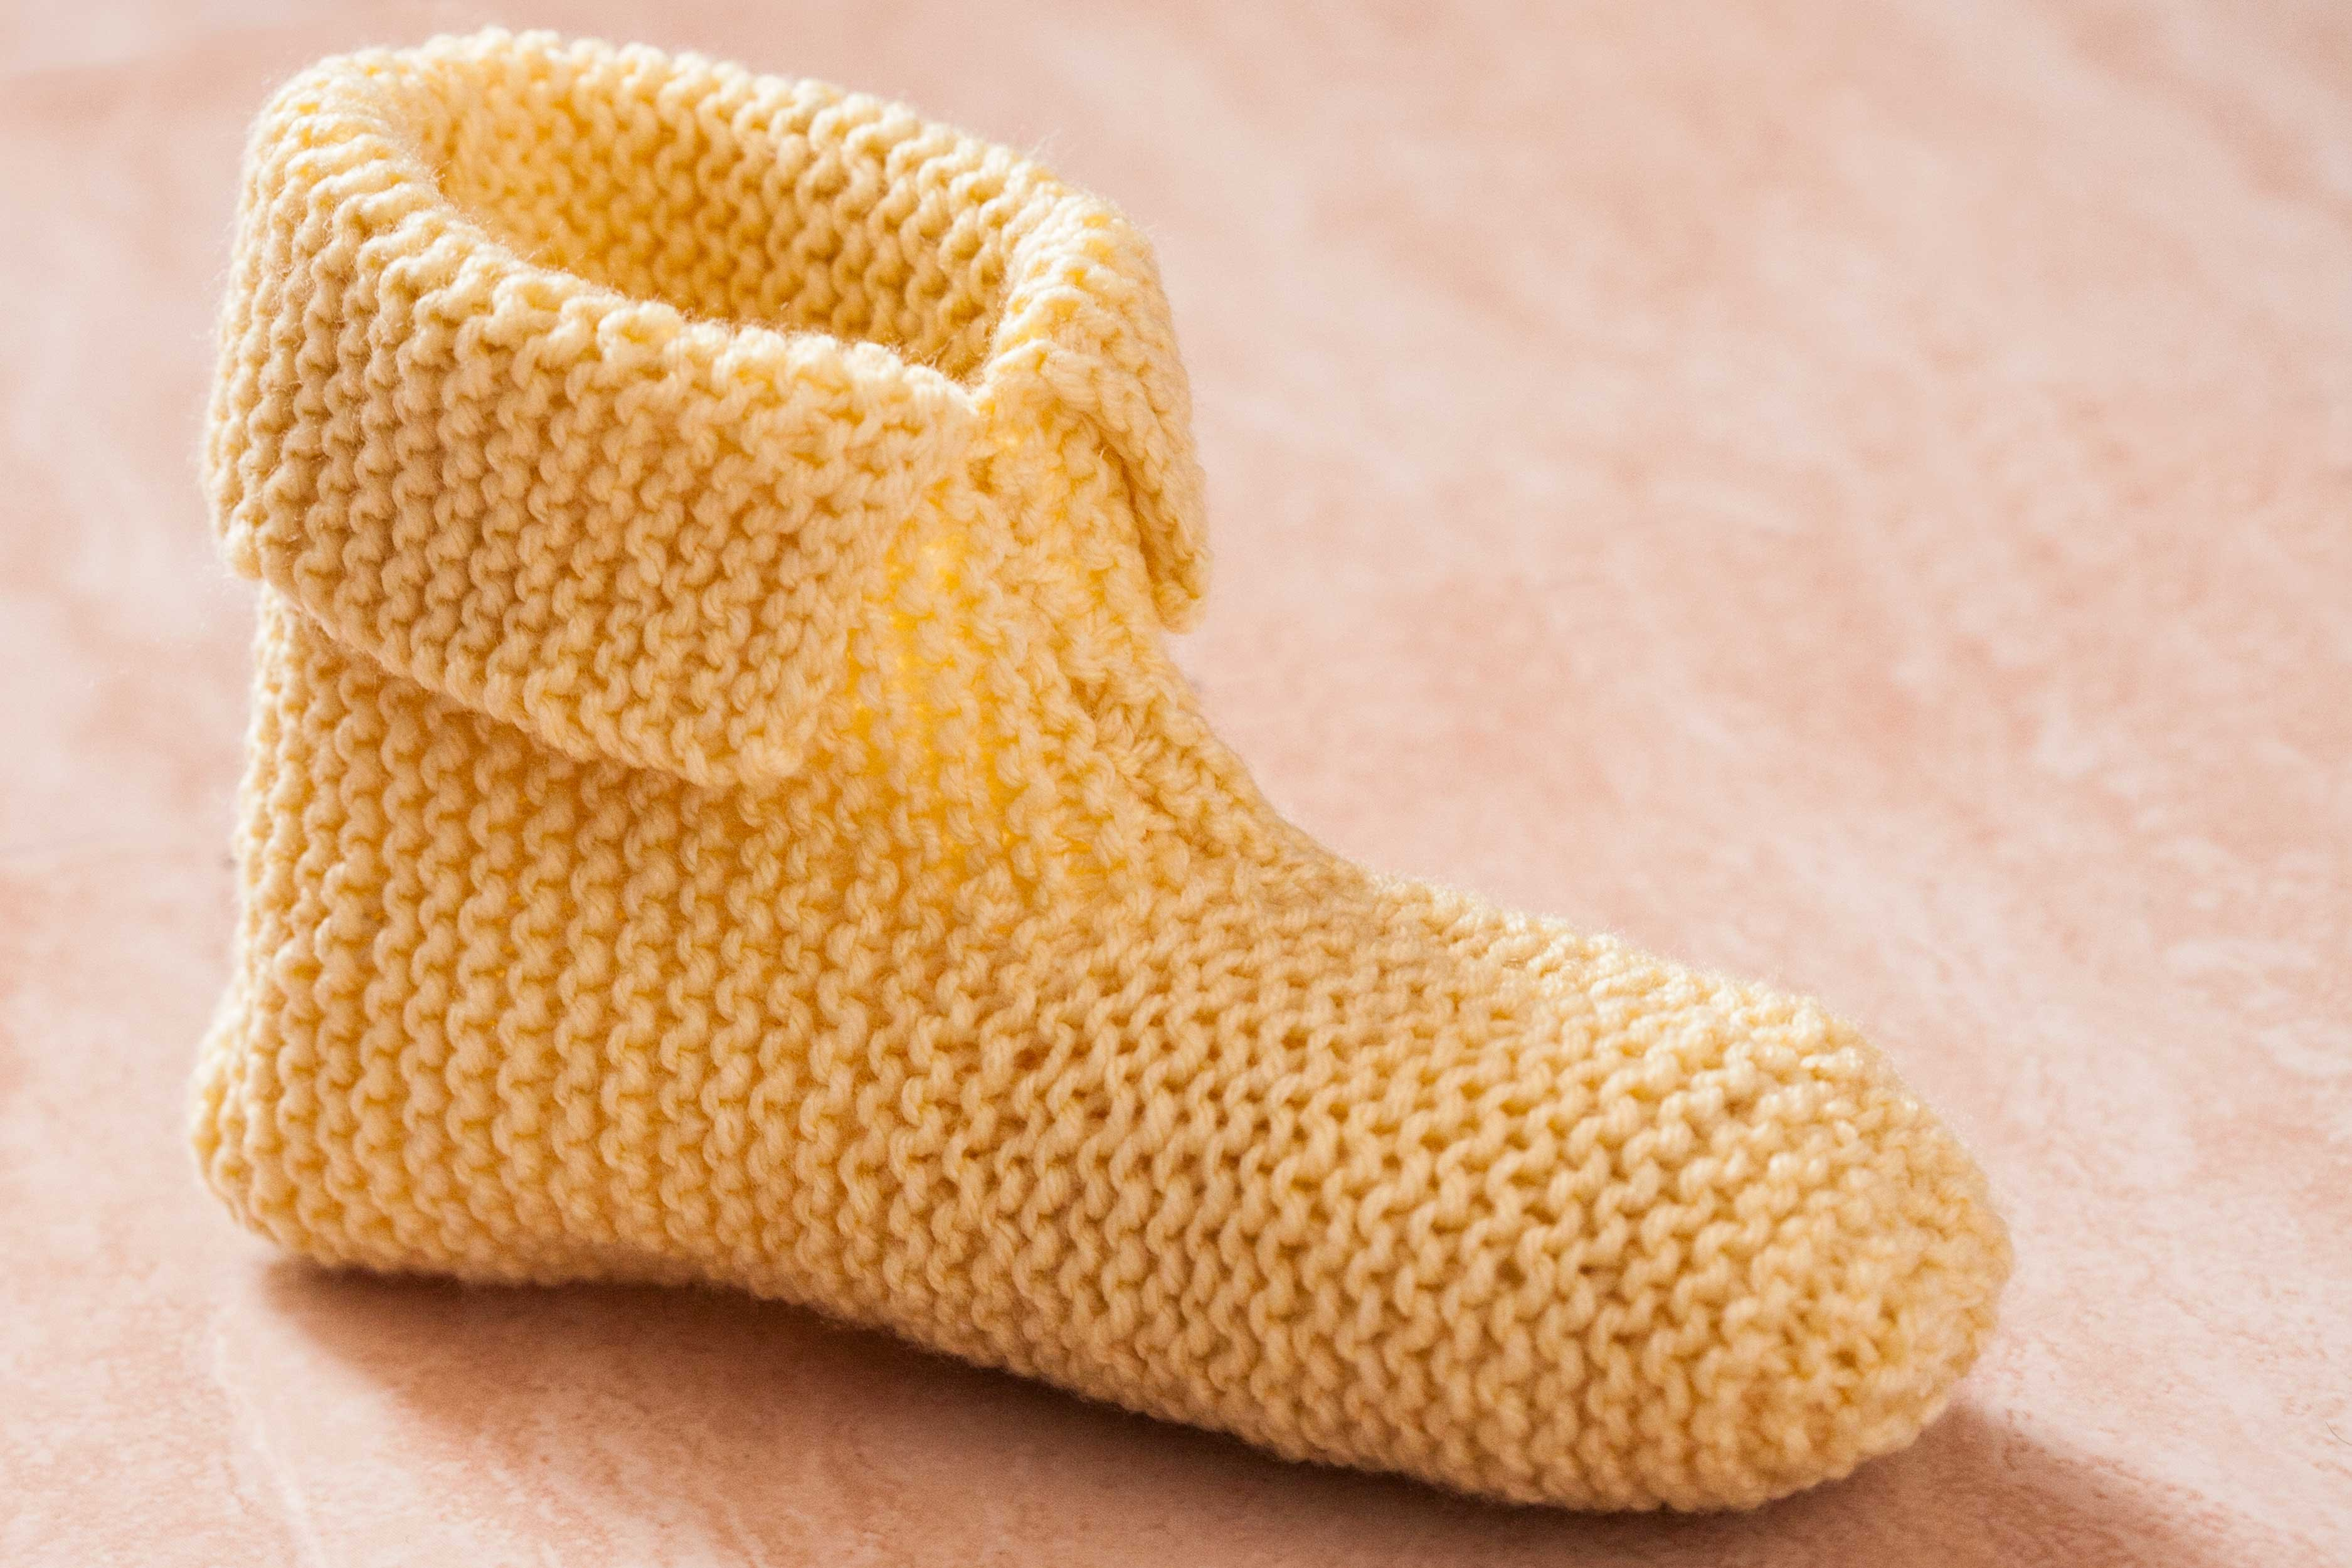 Knitting Instructions For Beginners Cast On : How to knit slippers for beginners with pictures ehow